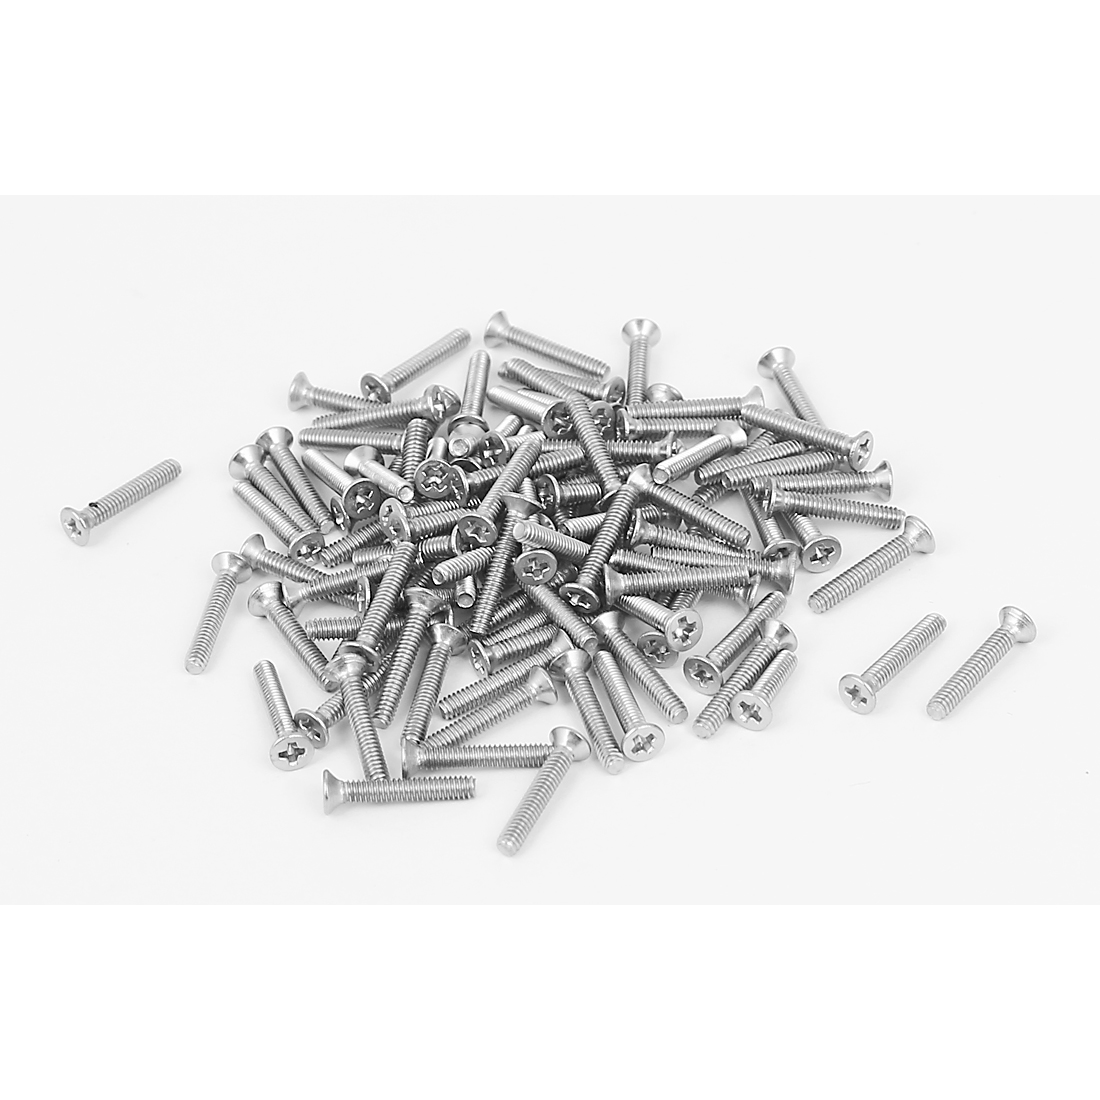 M2x12mm 304 Stainless Steel Phillips Flat Countersunk Head Machine Screws 100pcs